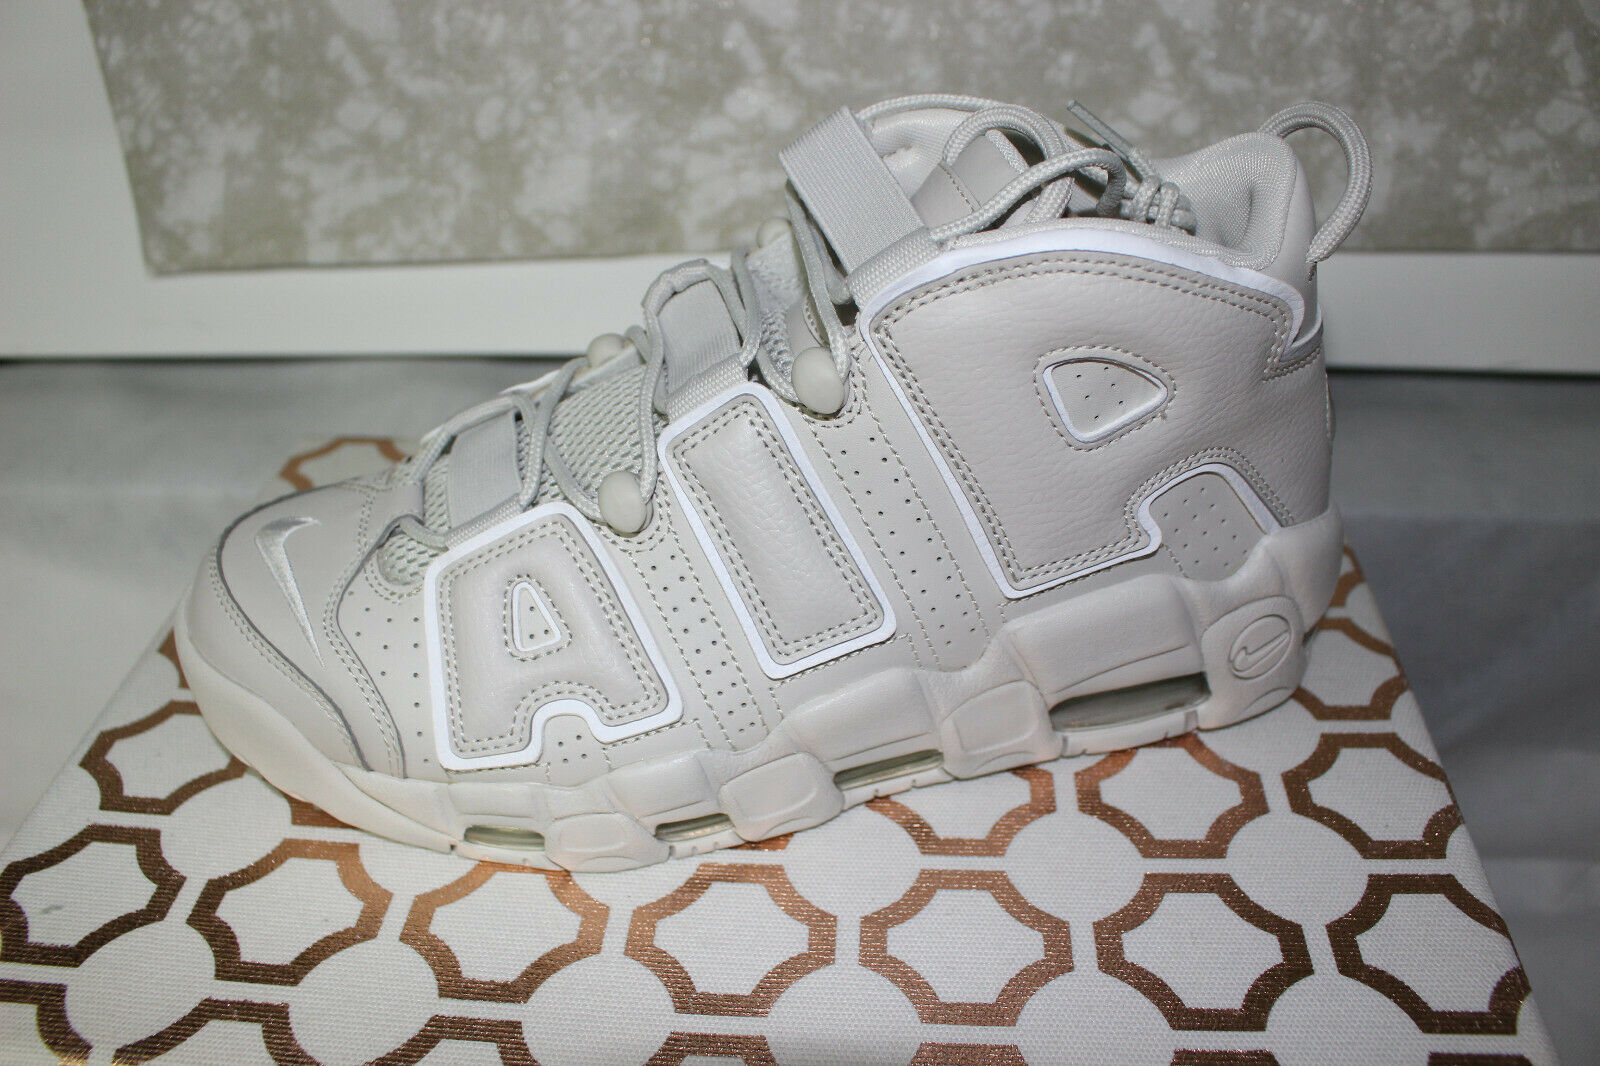 Nike Air More Uptempo '96 921948-001 Light Bone Brand New Size 10